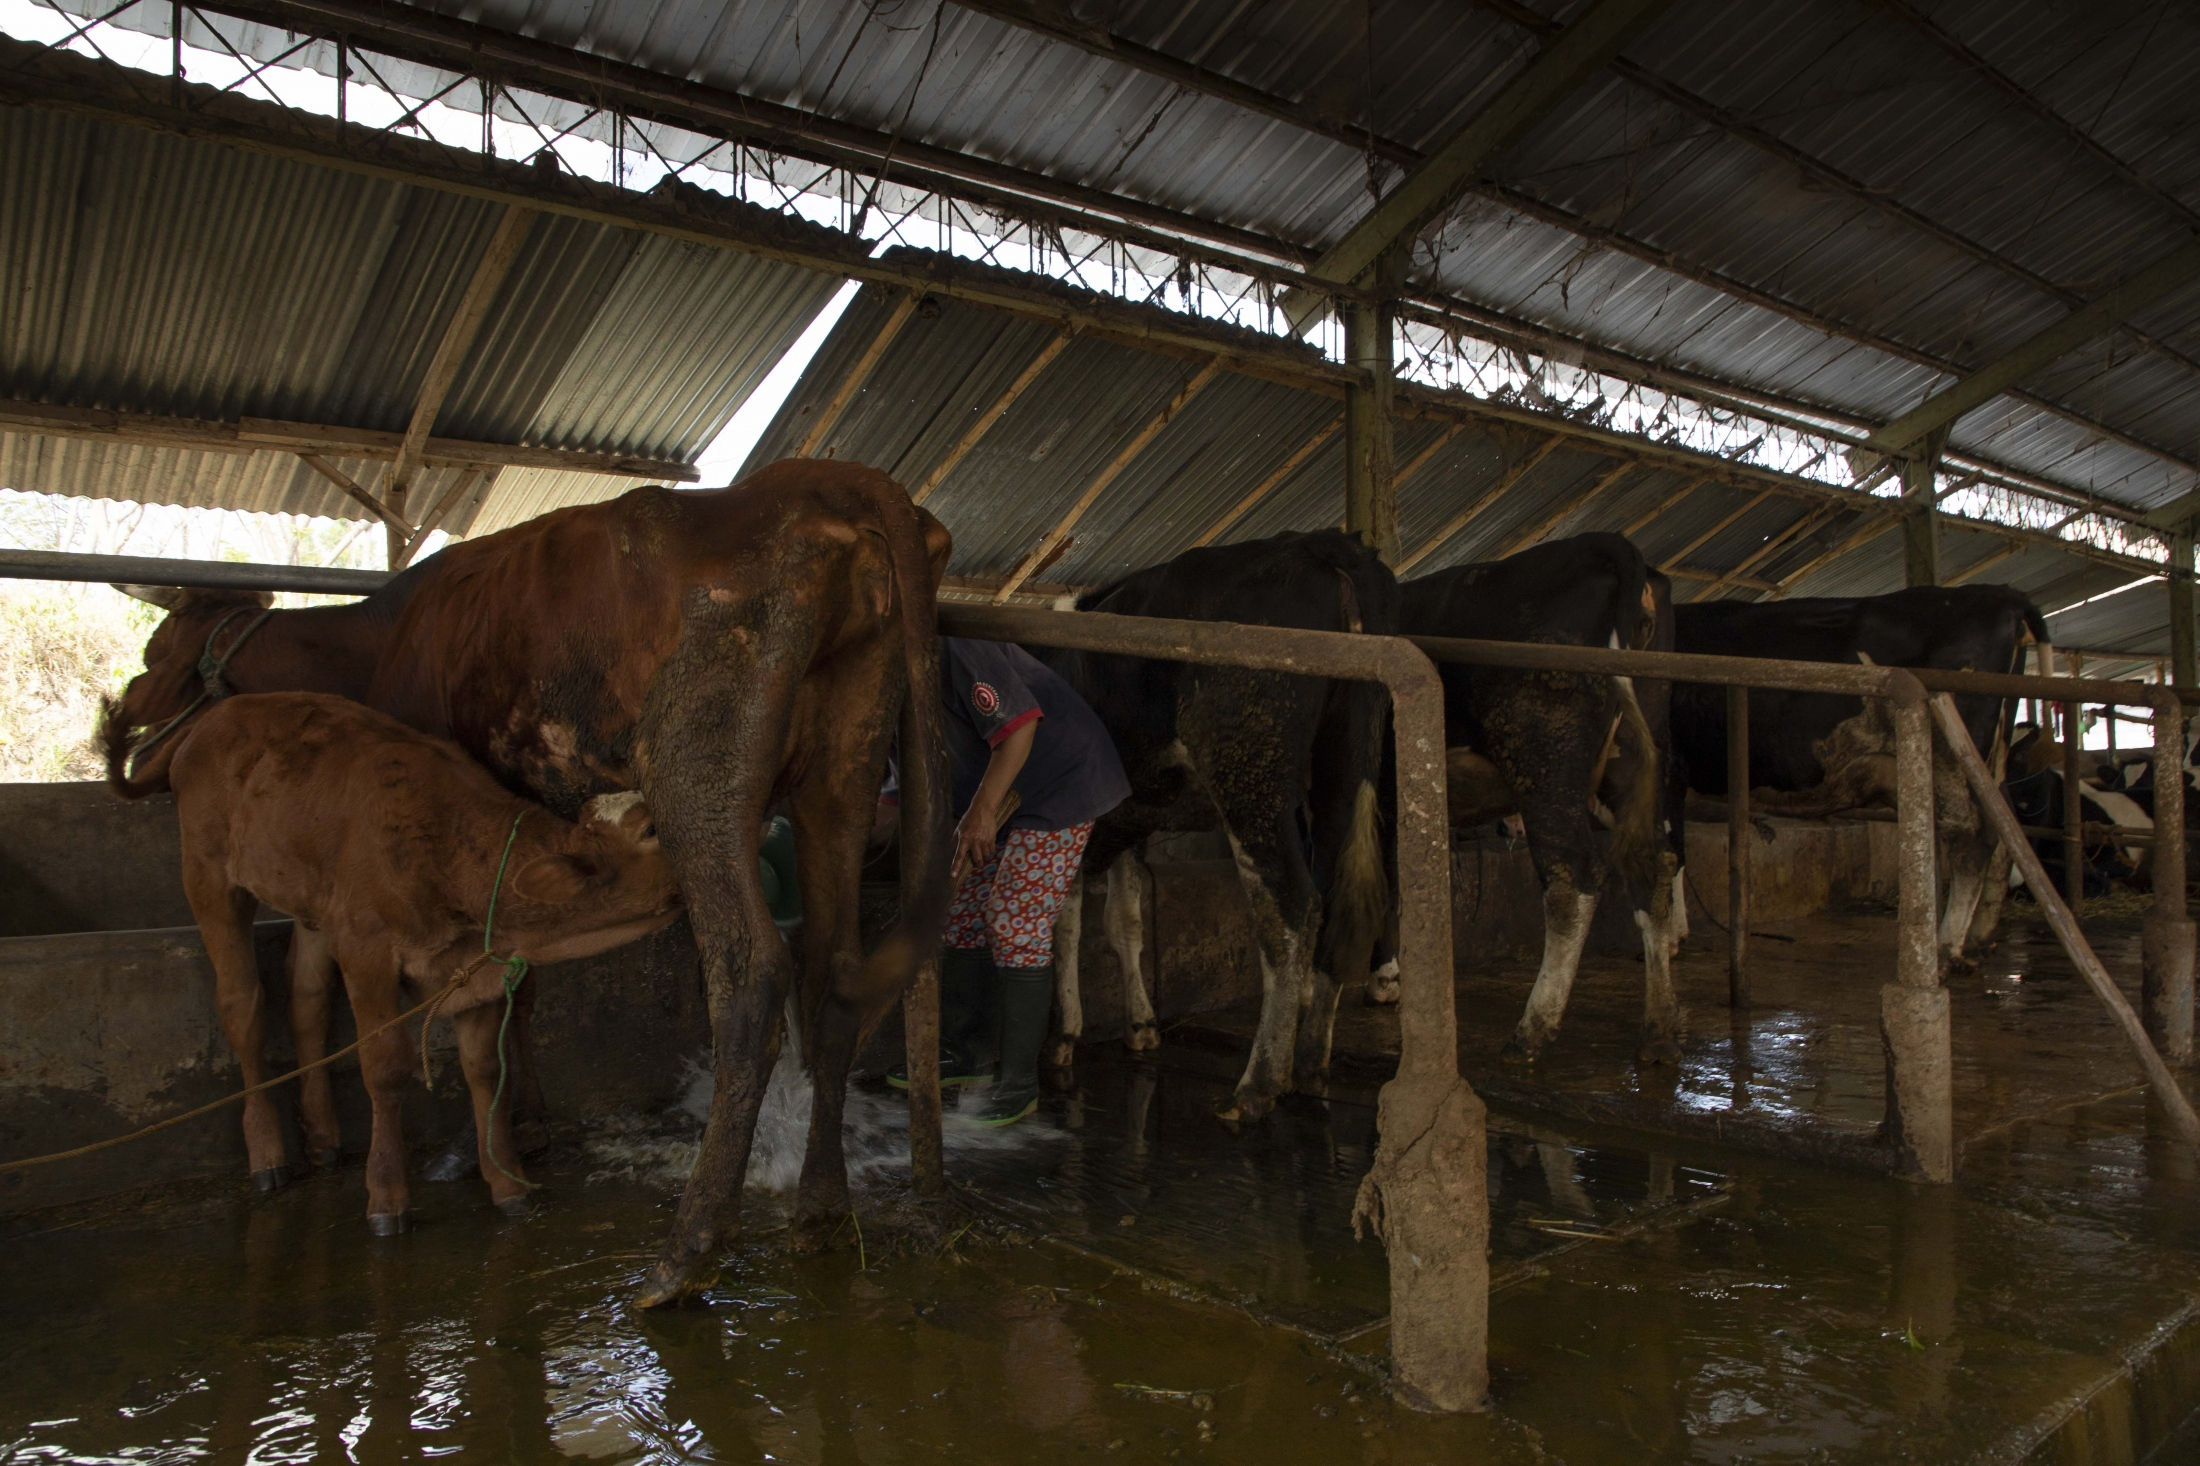 A woman cleaning cows in Karang Kendal. Today, it is the women who take care of the agriculture production in the mountain while men work in the nearby cities. The daily live of women is therefore strictly structures around the times when the cows need to be milked, fed, and washed. Agricultural productivity is a direct result of Merapi. The short-term destruction of its eruptions is 'outweighed' by the long-term benefits of the nutrients that ash falls bring to soils, especially as coupled with abundant rainfall. Cows also represent the savings of families. In hard ties, they sell them to make a living when no other forms of income are available.